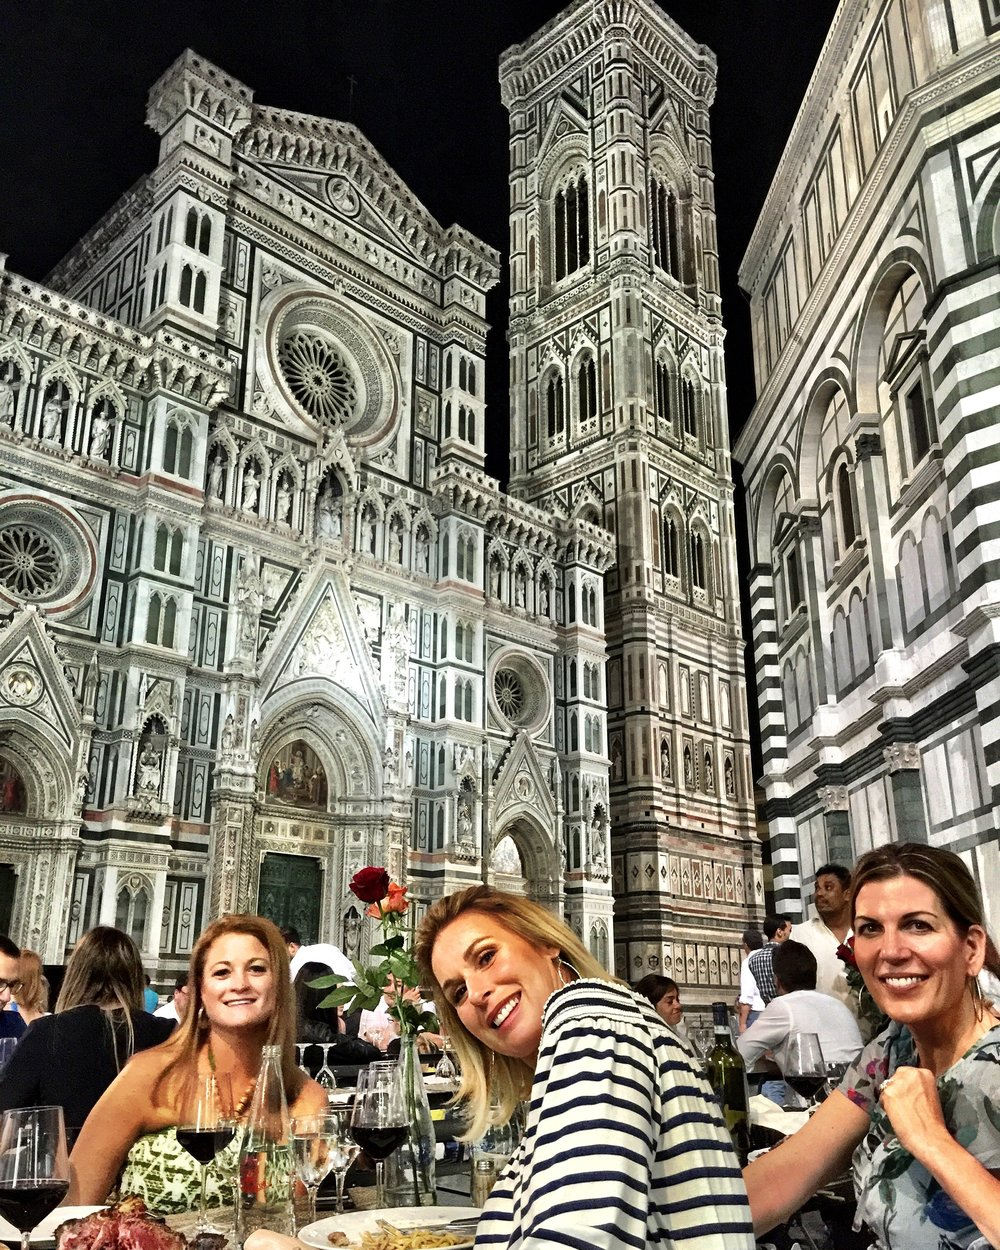 Kimberly Banach, Theresa Steg and Isabel in Firenze